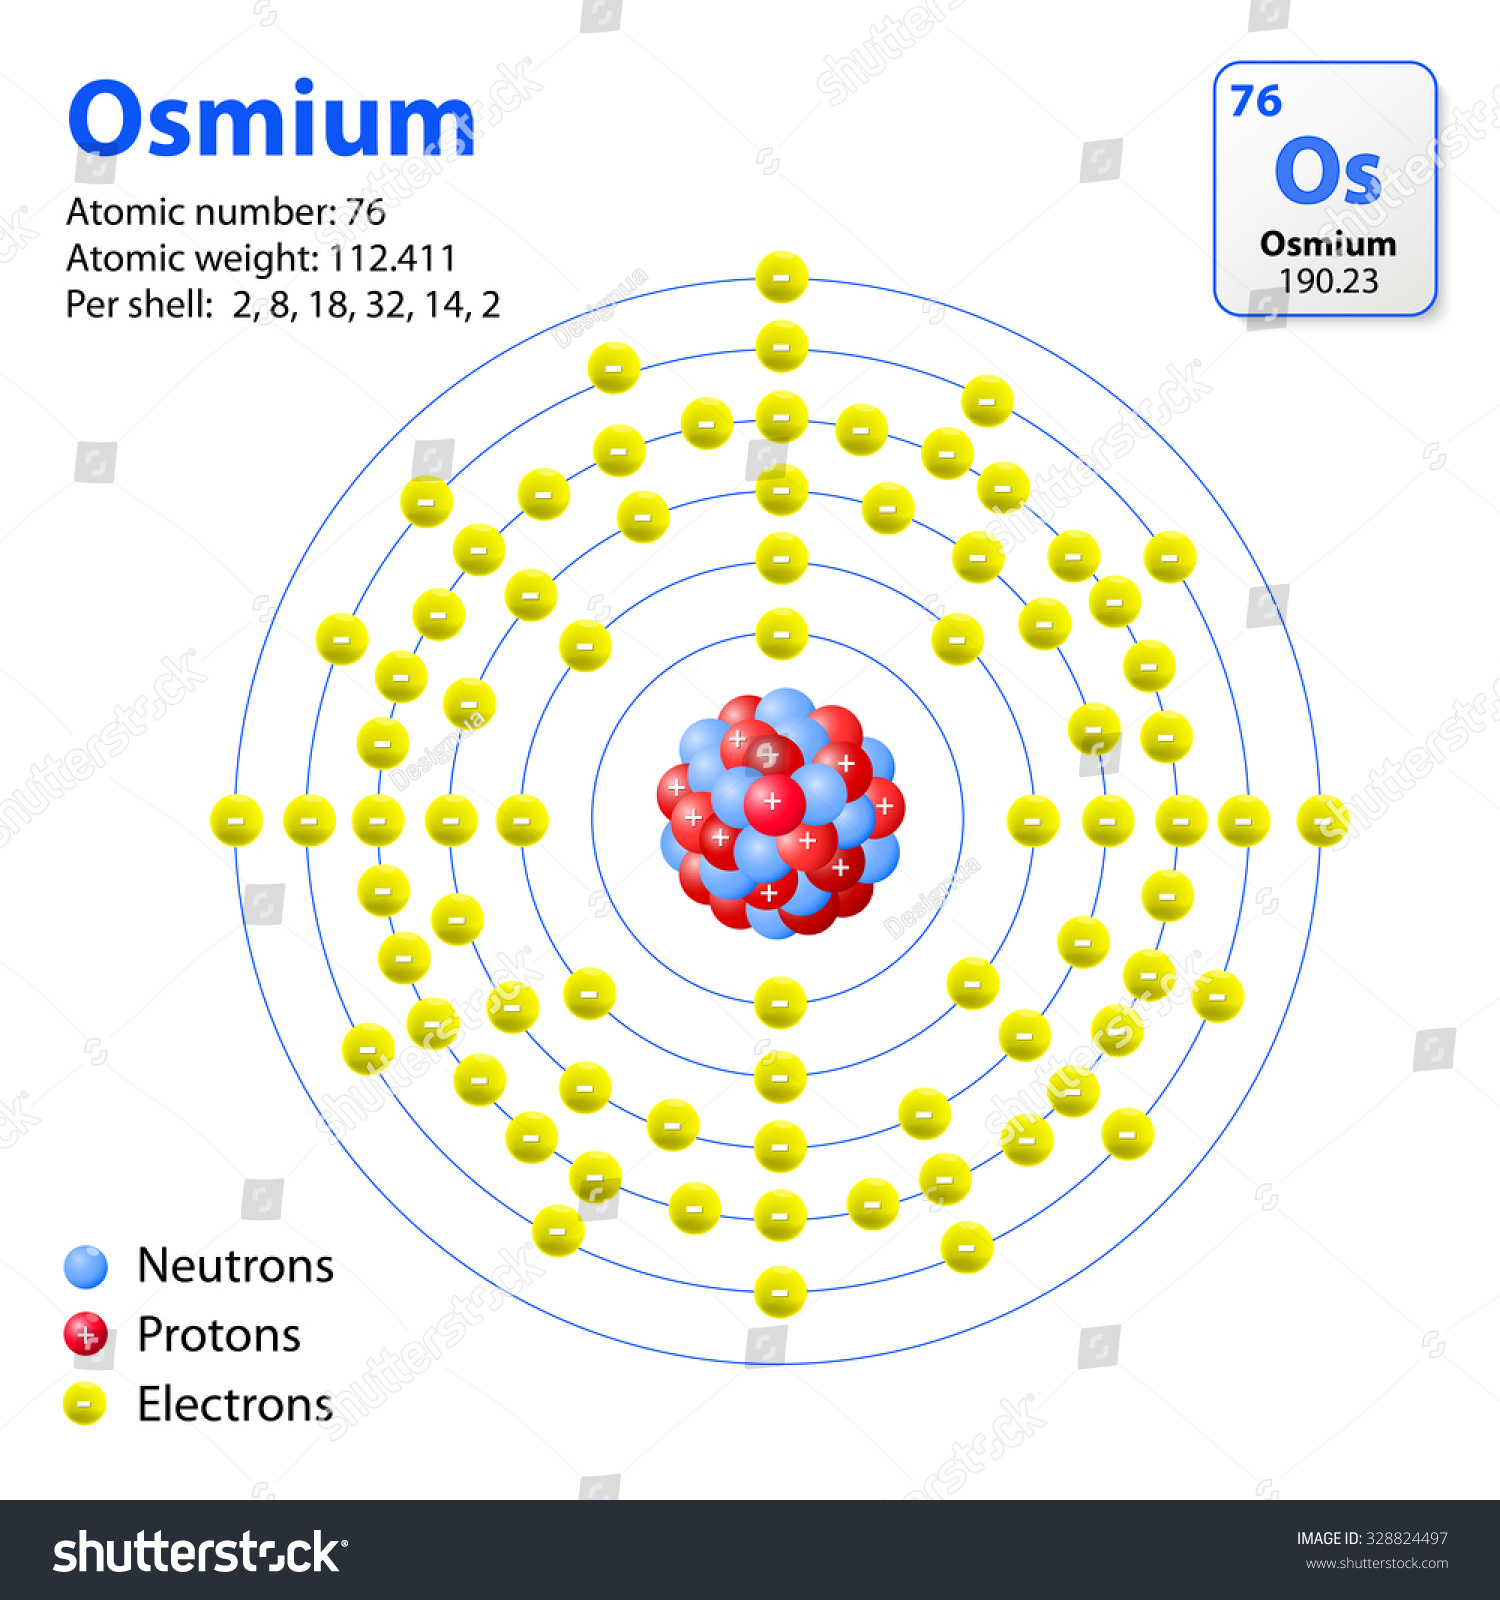 hight resolution of this diagram shows the electron shell configuration for the osmium atom ostium transition metal